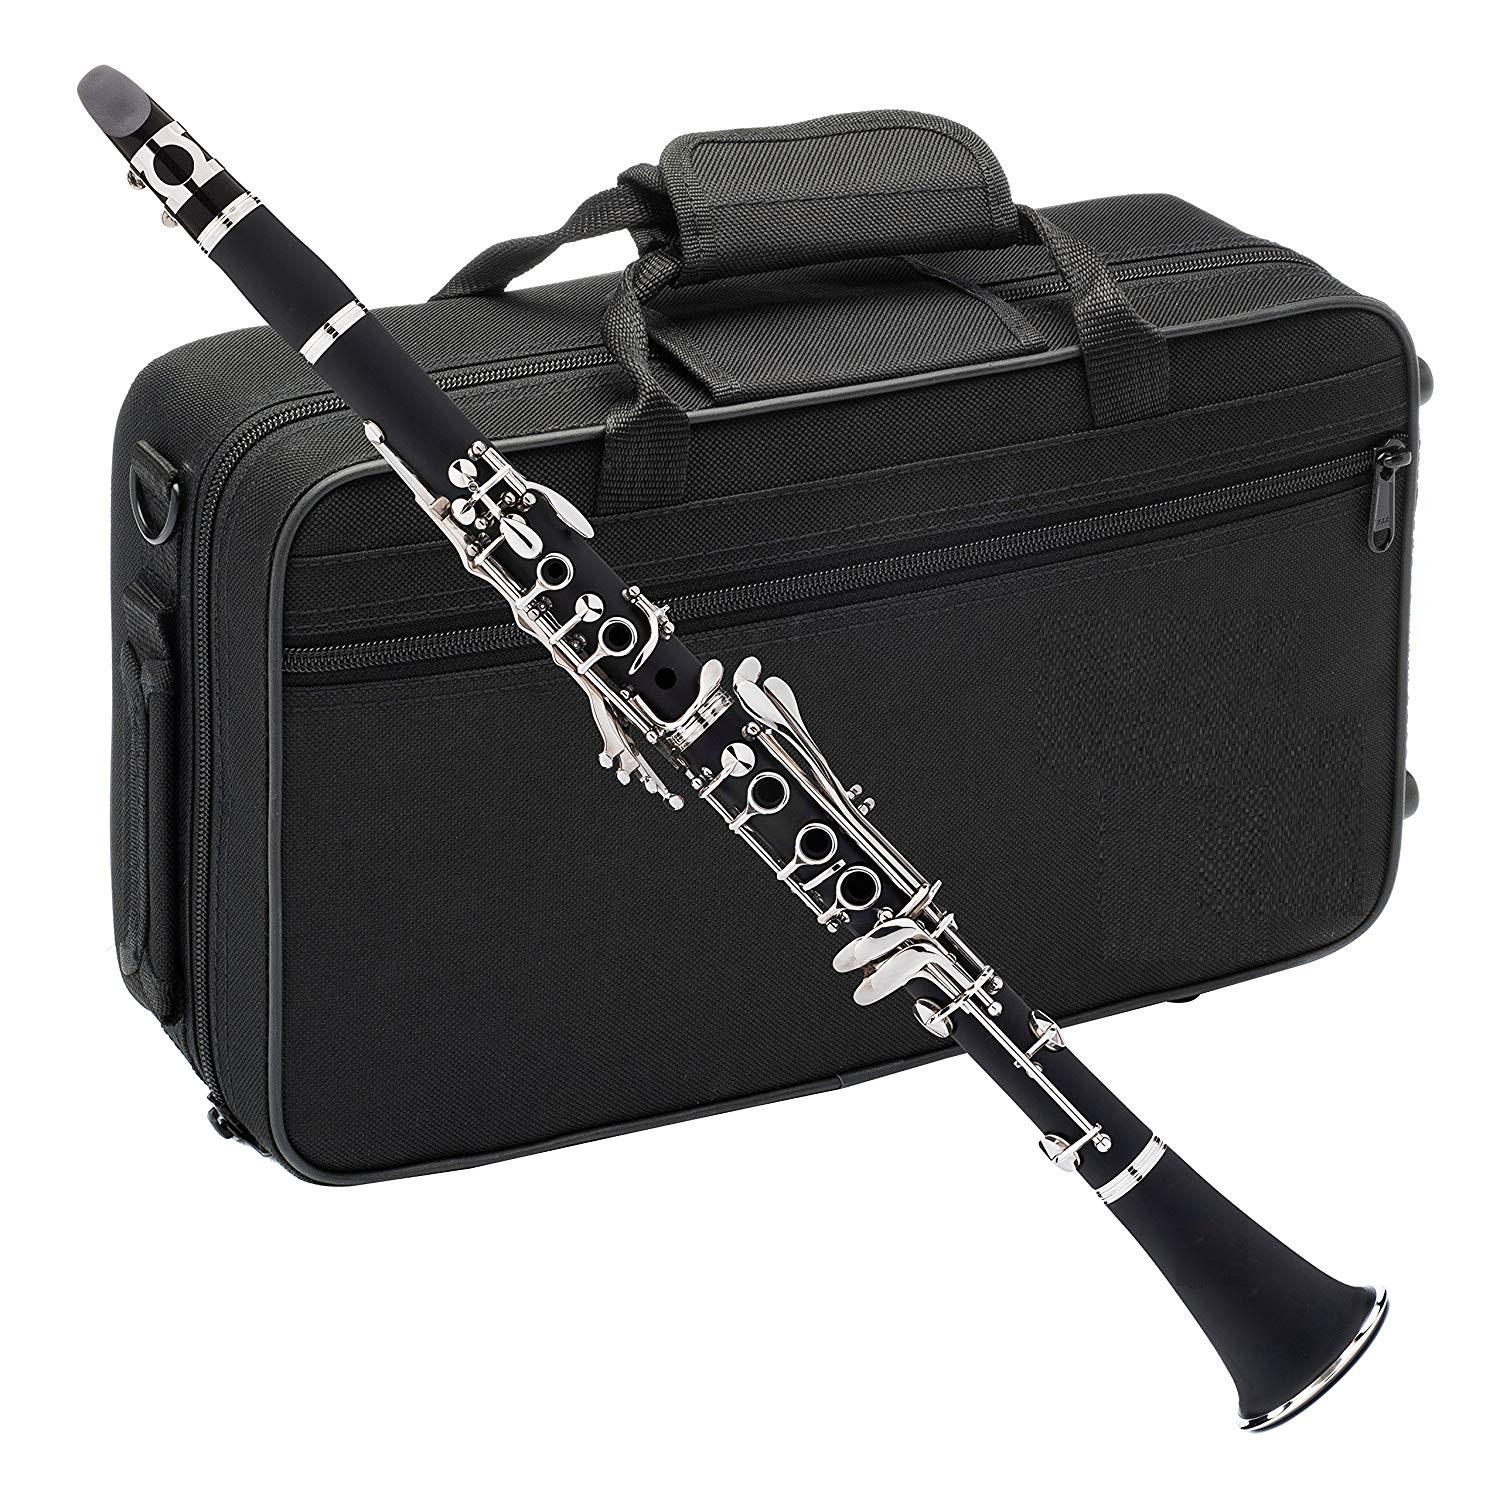 Clarinet HCL-102 professional factory made level Woodwind instrument